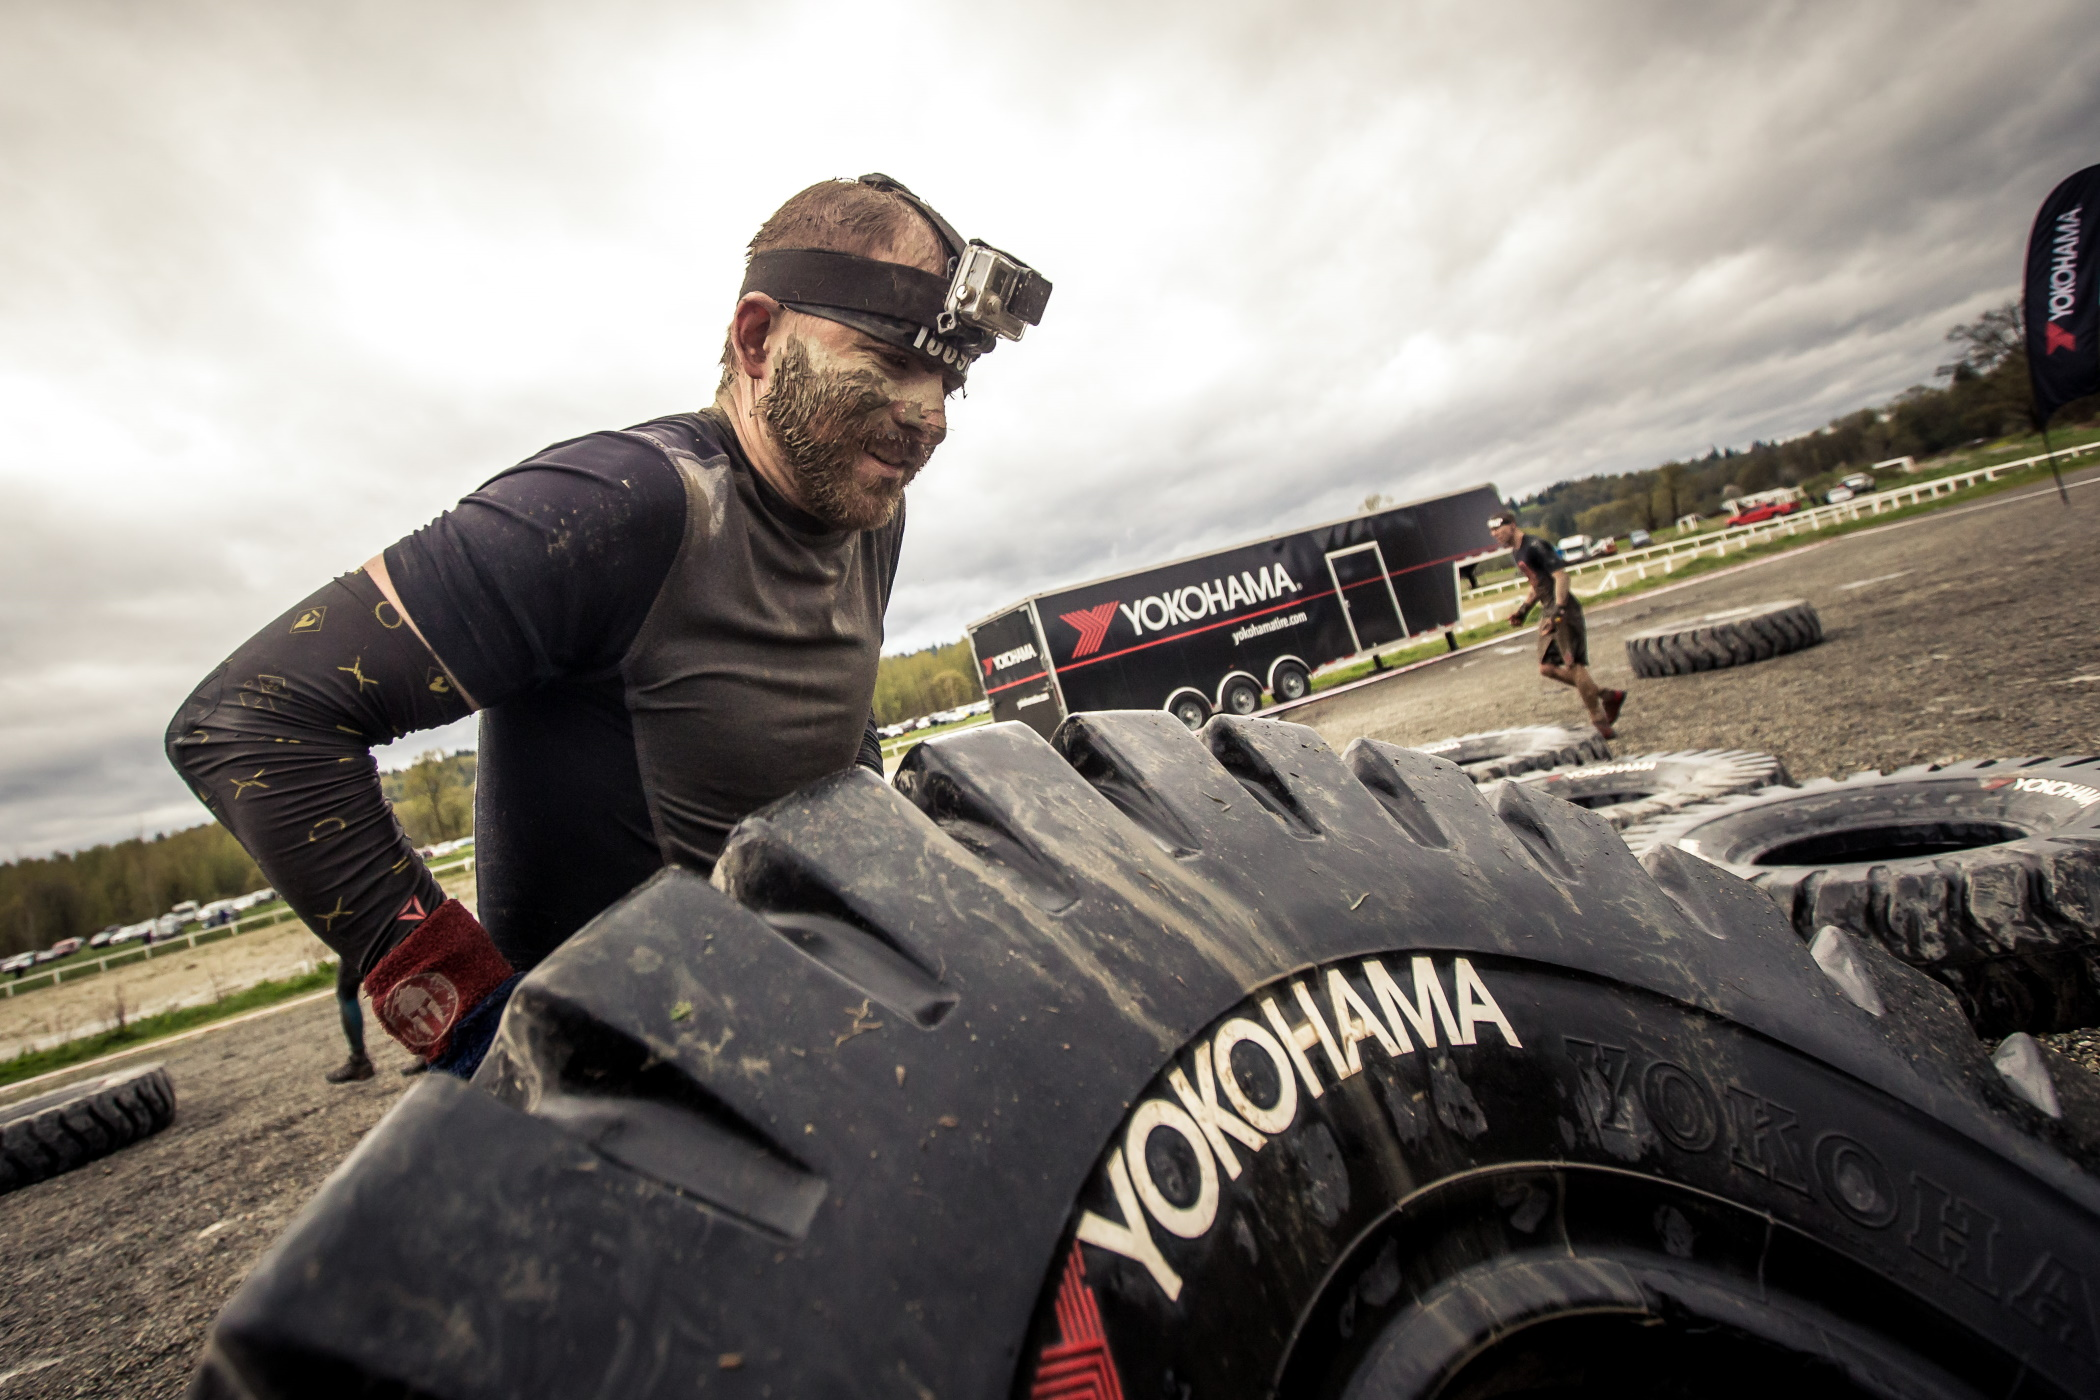 Yokohama Tire's Summer Spartan Race  Promotion Features Free 2021 Race Entry